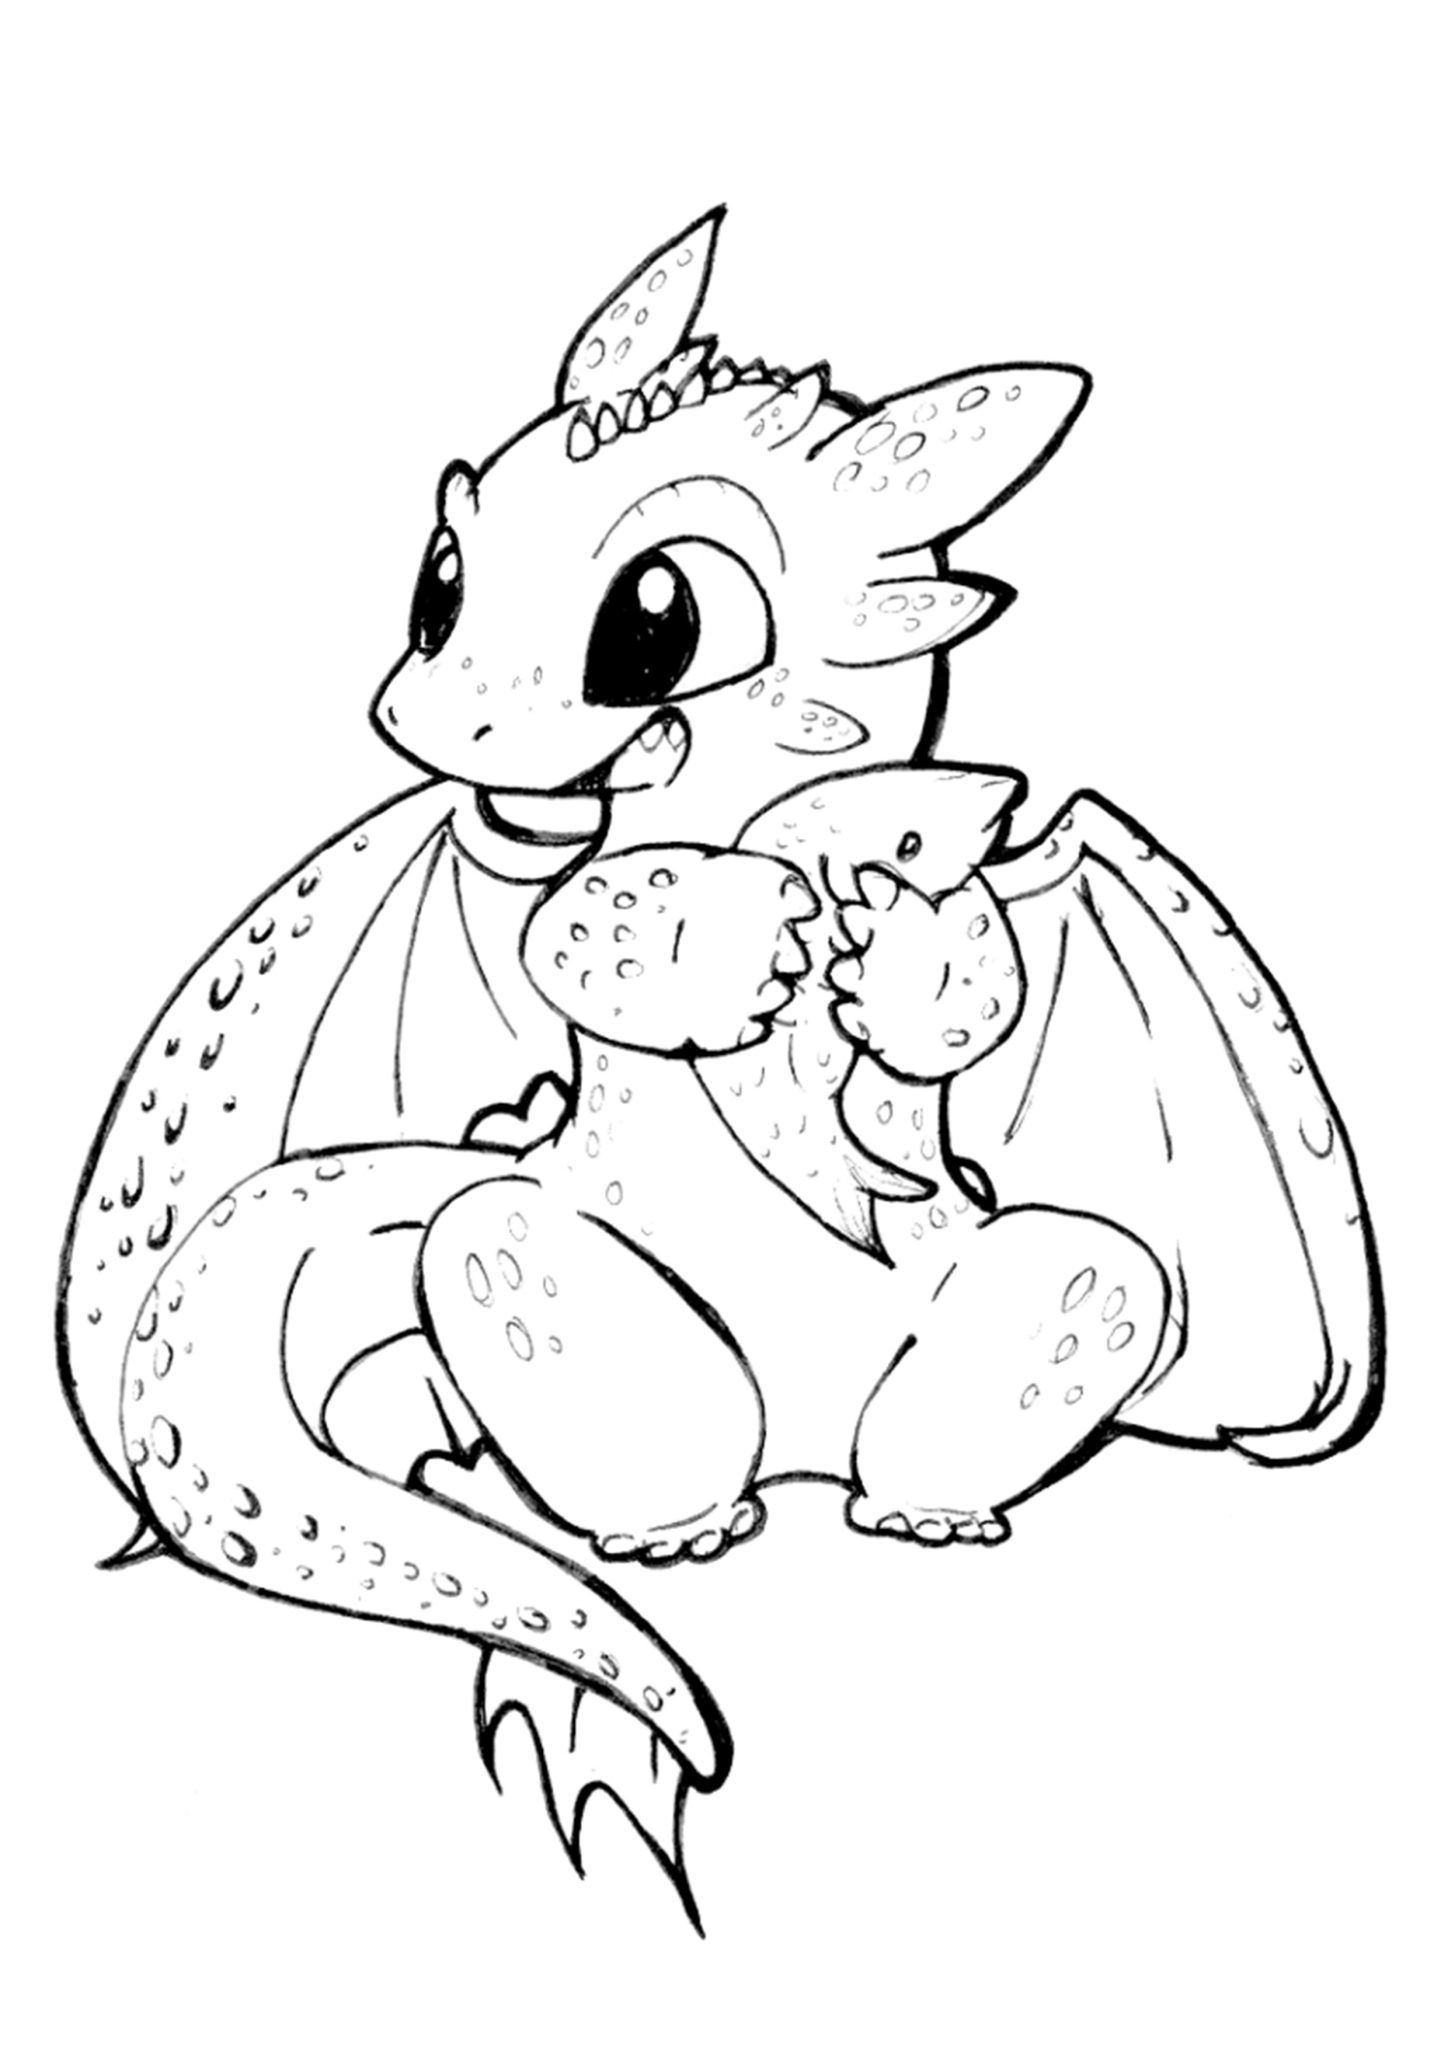 Free Easy To Print Dragon Coloring Pages In 2020 Dragon Coloring Page Valentine Coloring Pages Cartoon Coloring Pages